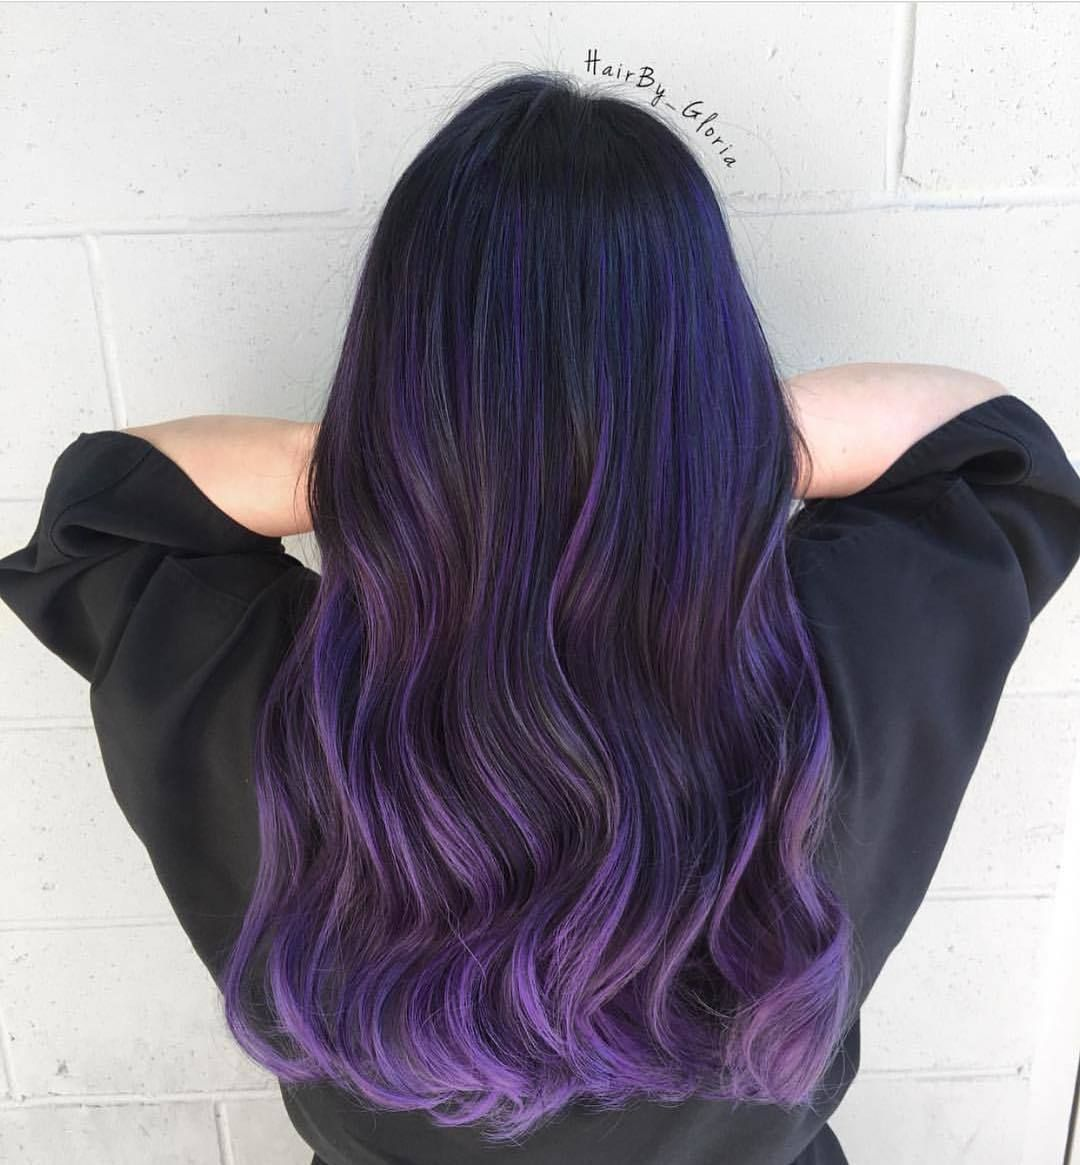 Black And Lavender Ombre Long Hair Hair Color For Black Hair Purple Ombre Hair Hair Styles